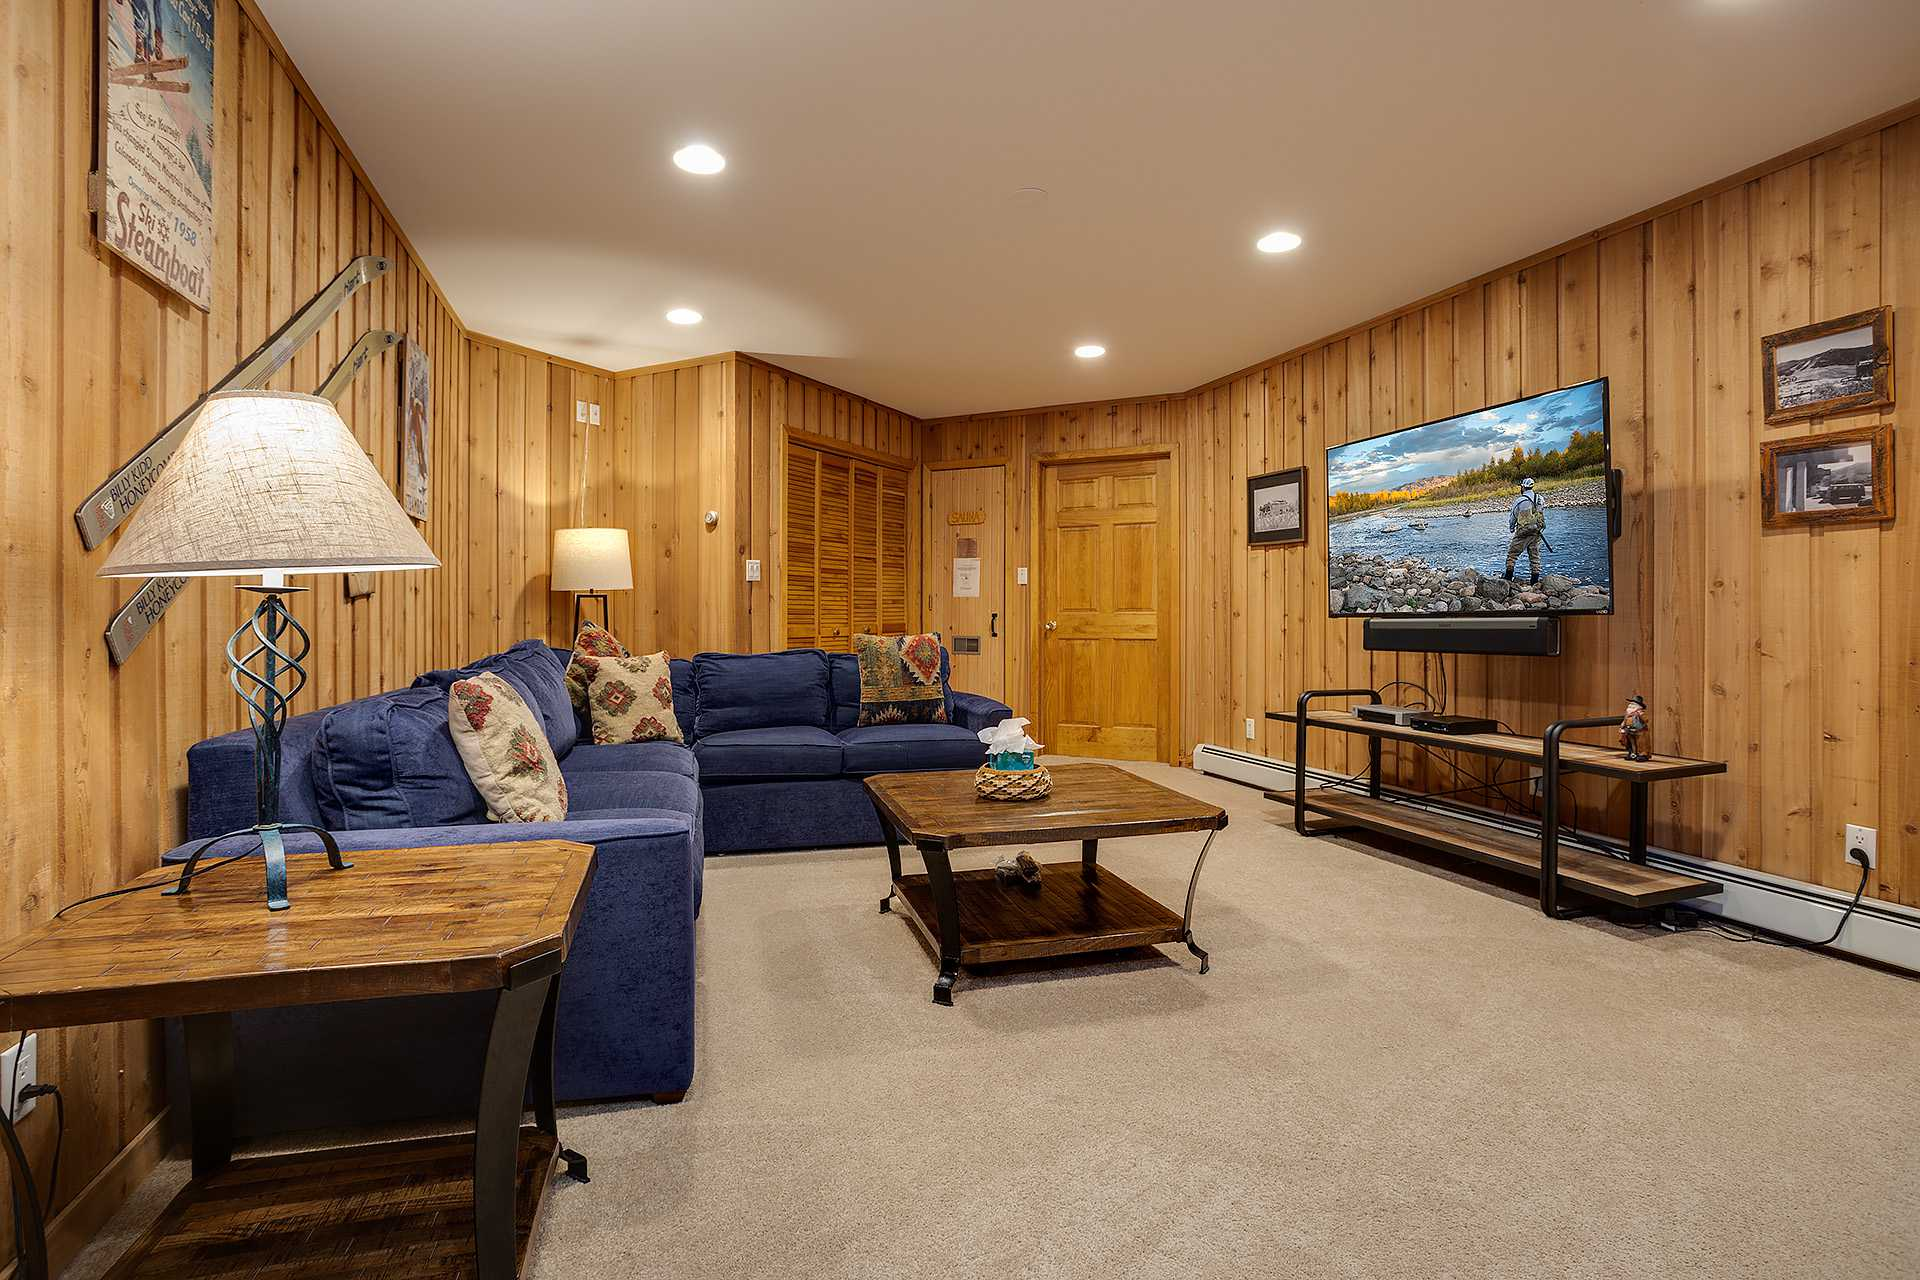 90ST2 - Ski Trail Lodge II